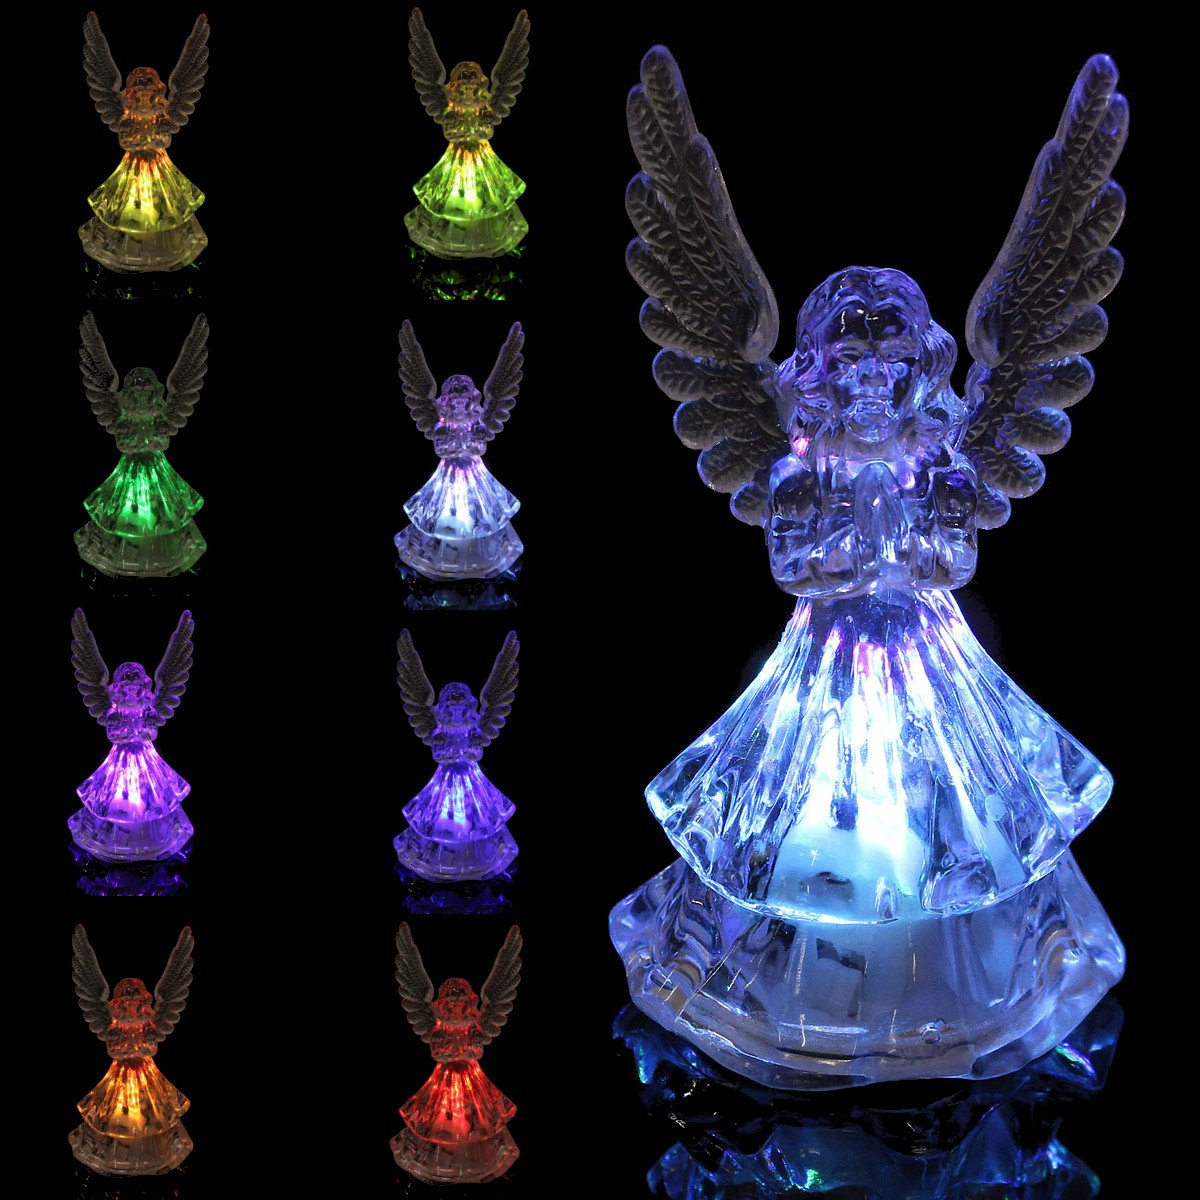 wuchance Changing Color Acrylic Color ICY Crystal Angel LED Light Lamp Home Decoration